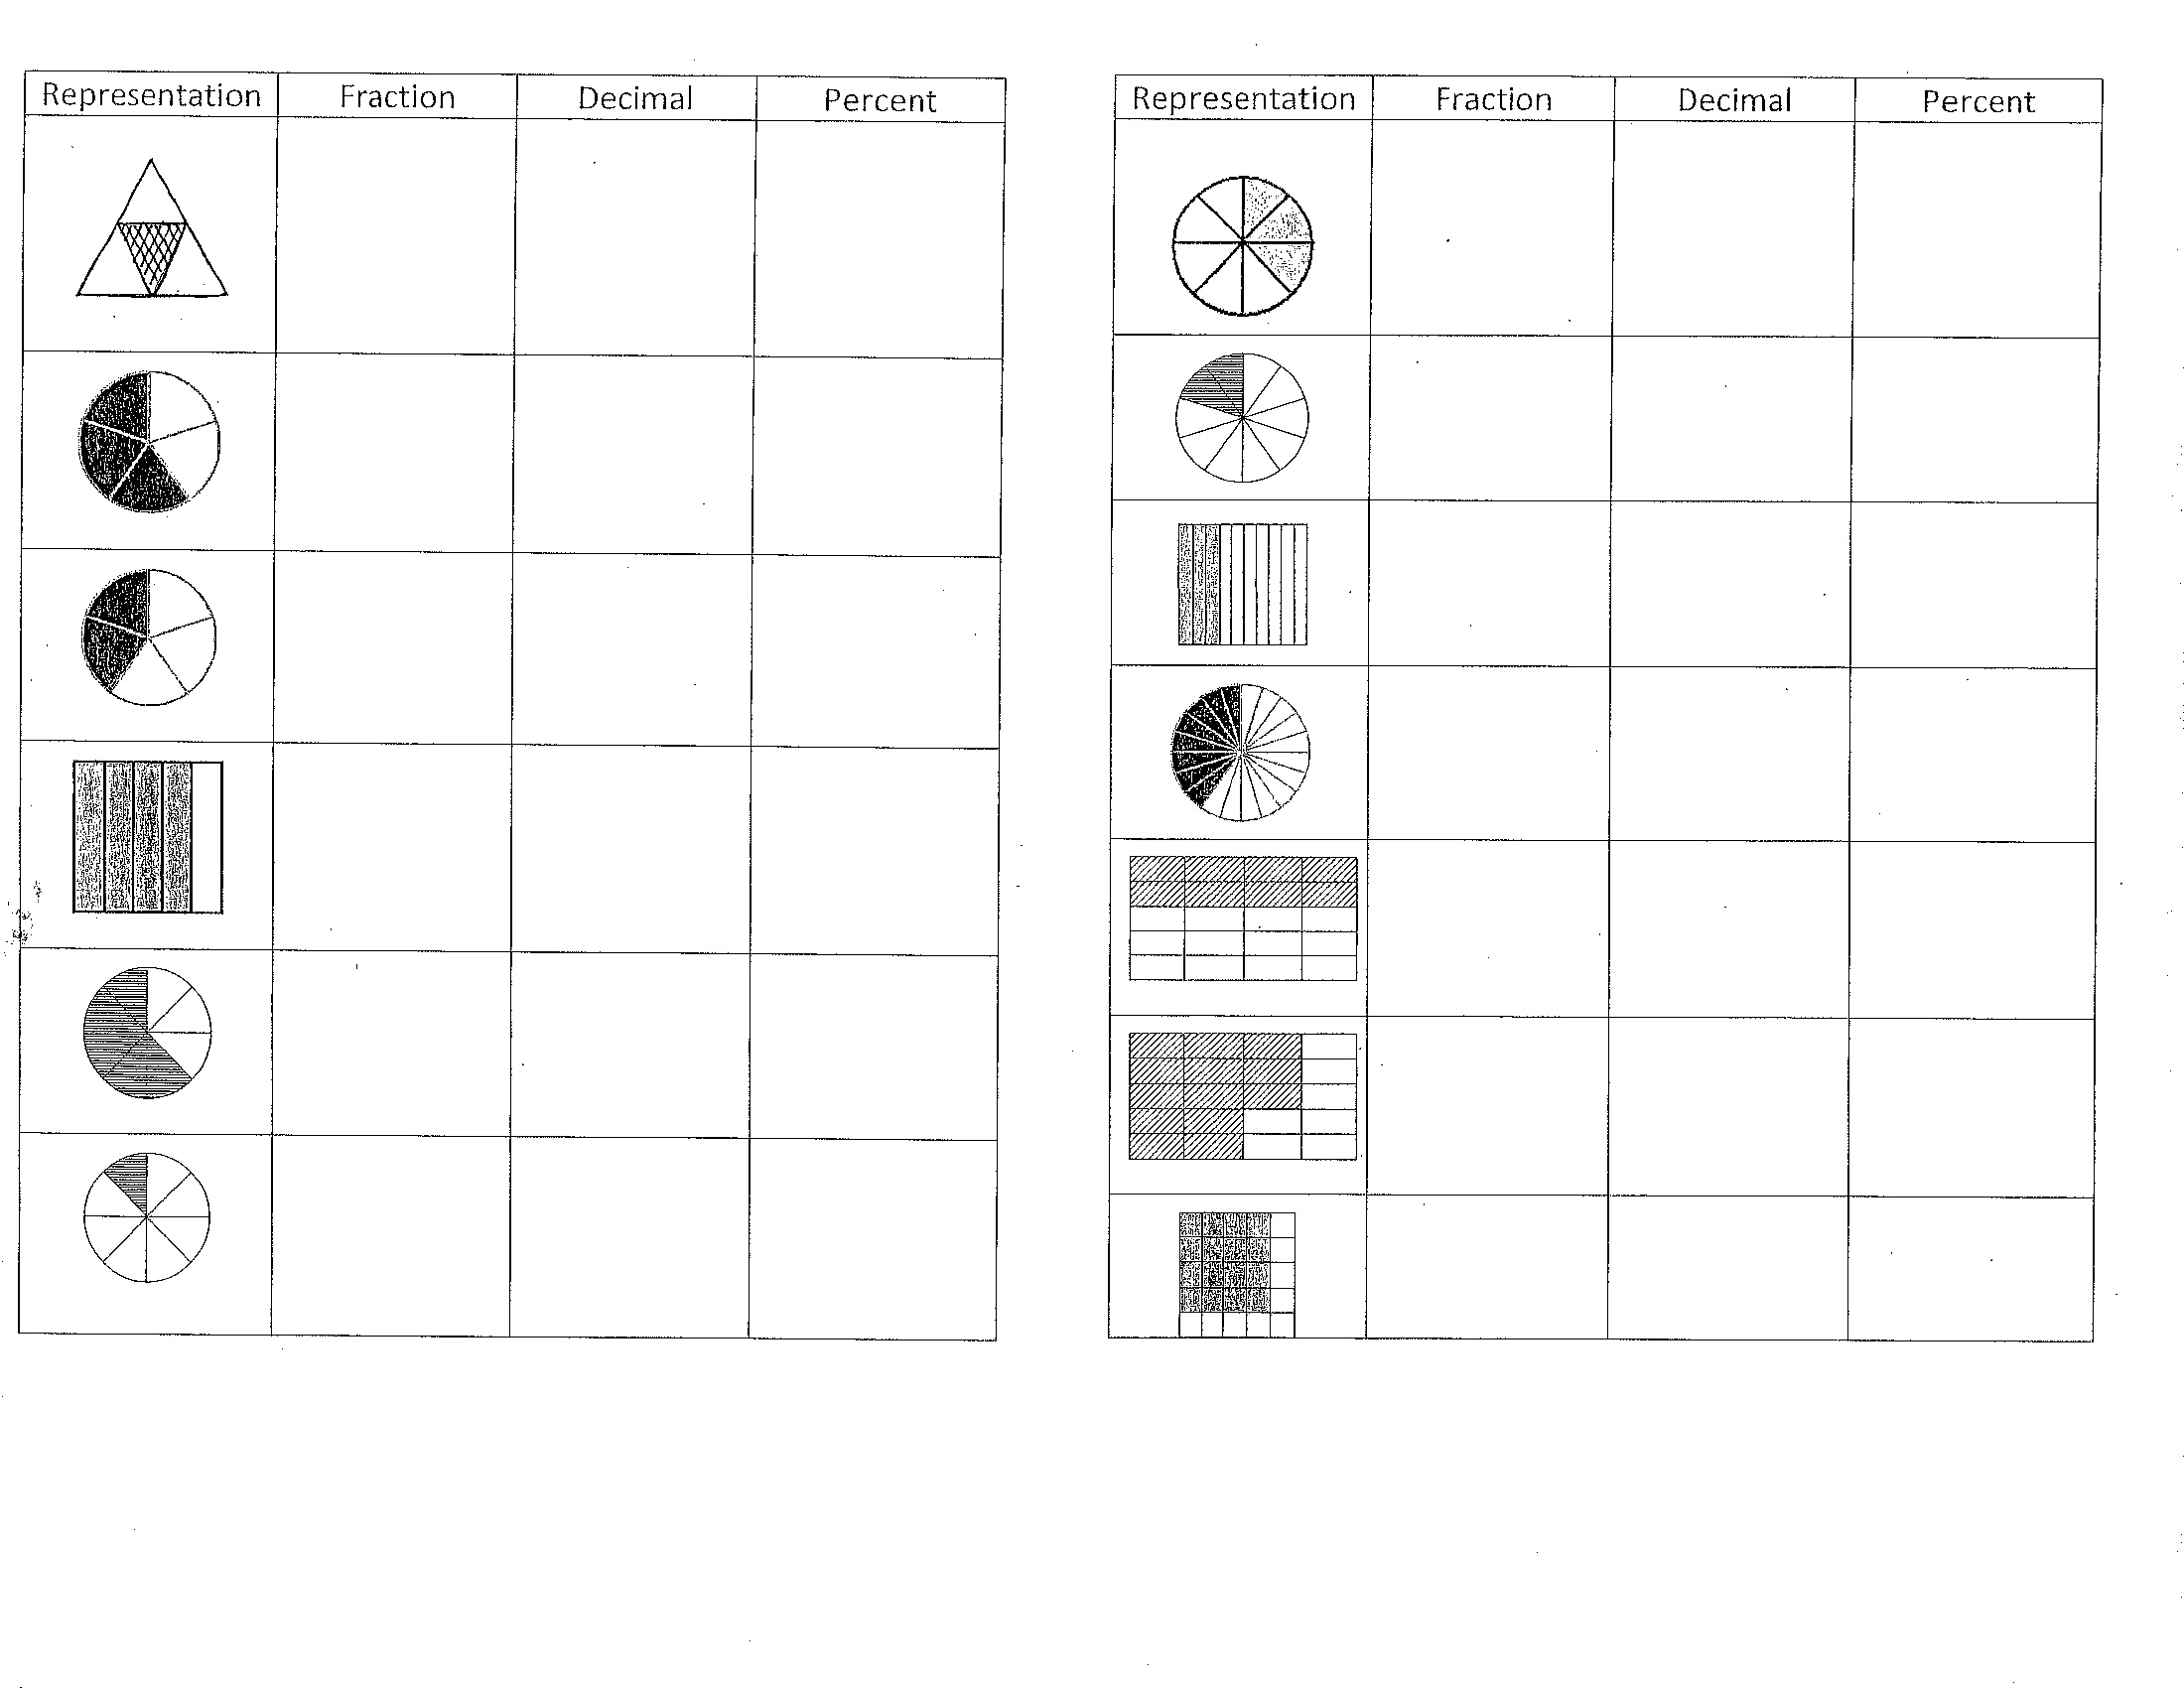 15 Best Images Of Fraction To Decimal To Percent Worksheet